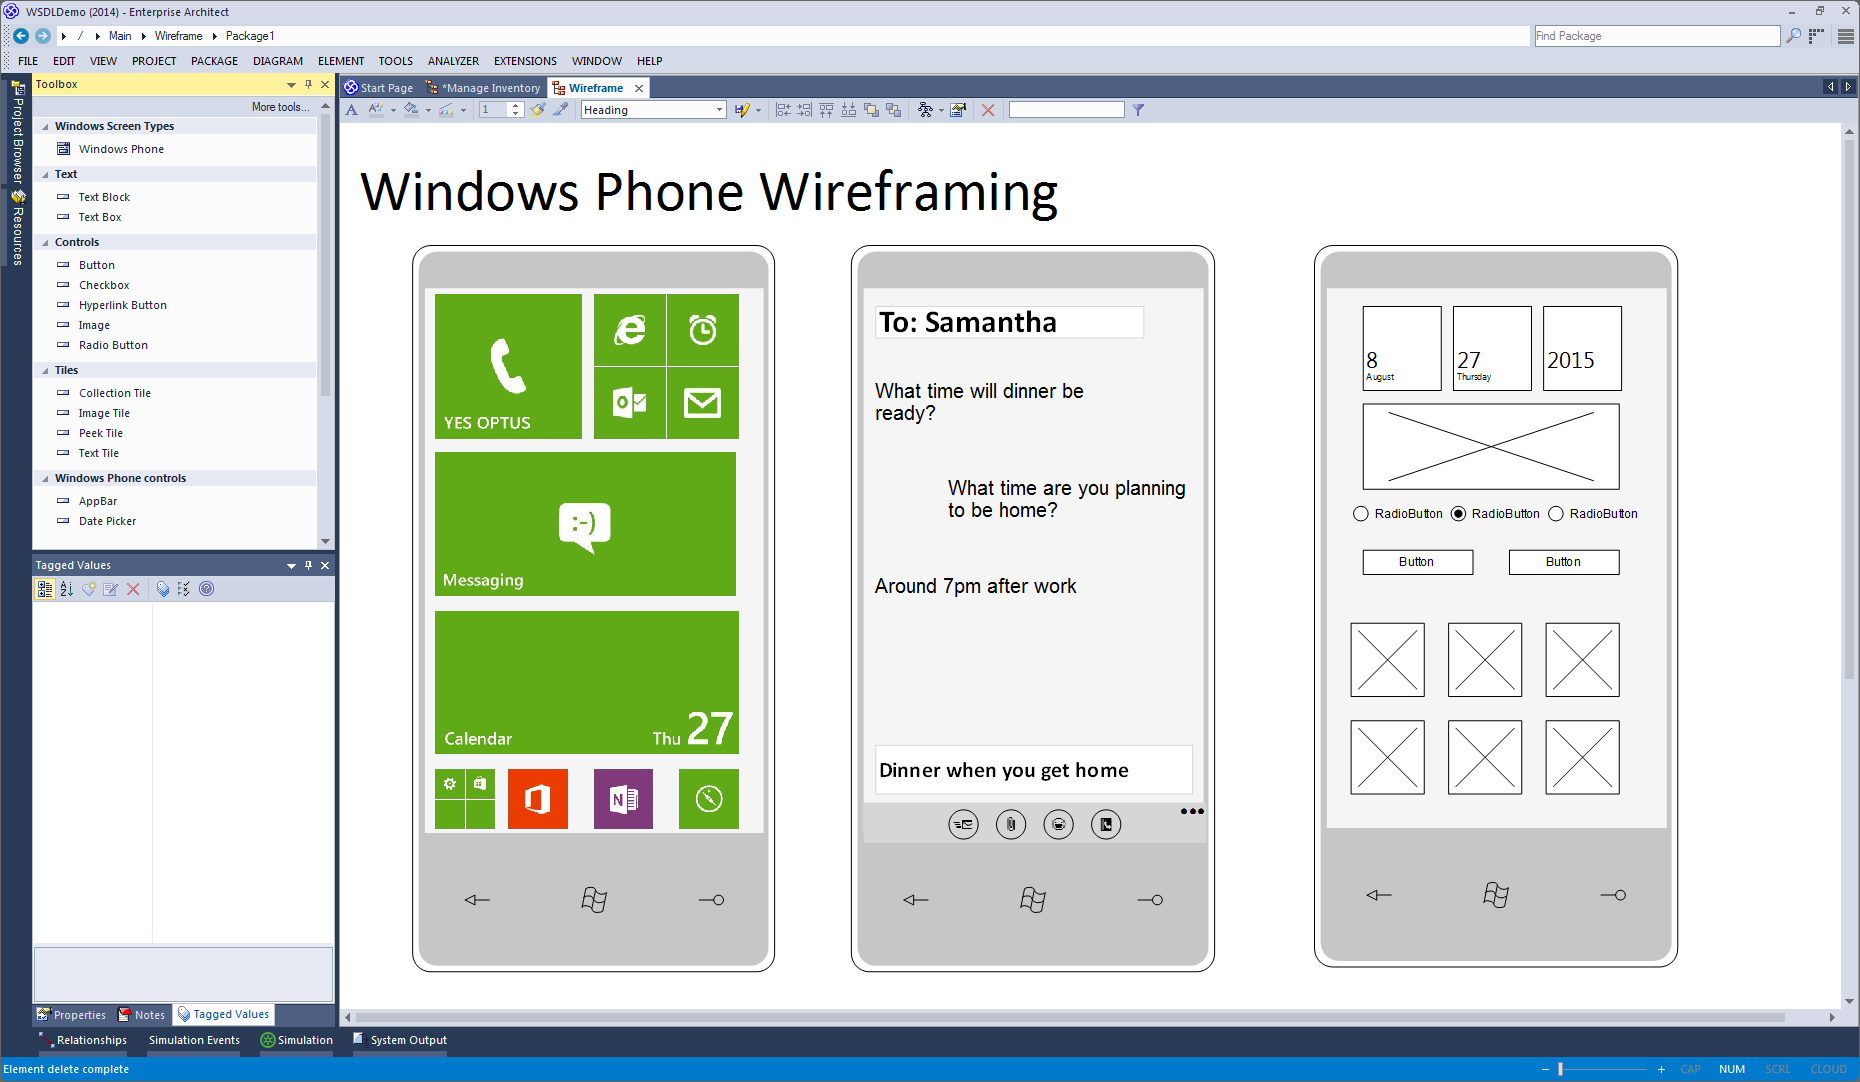 Enterprise Architect 专业版: Windows Phone的框线图